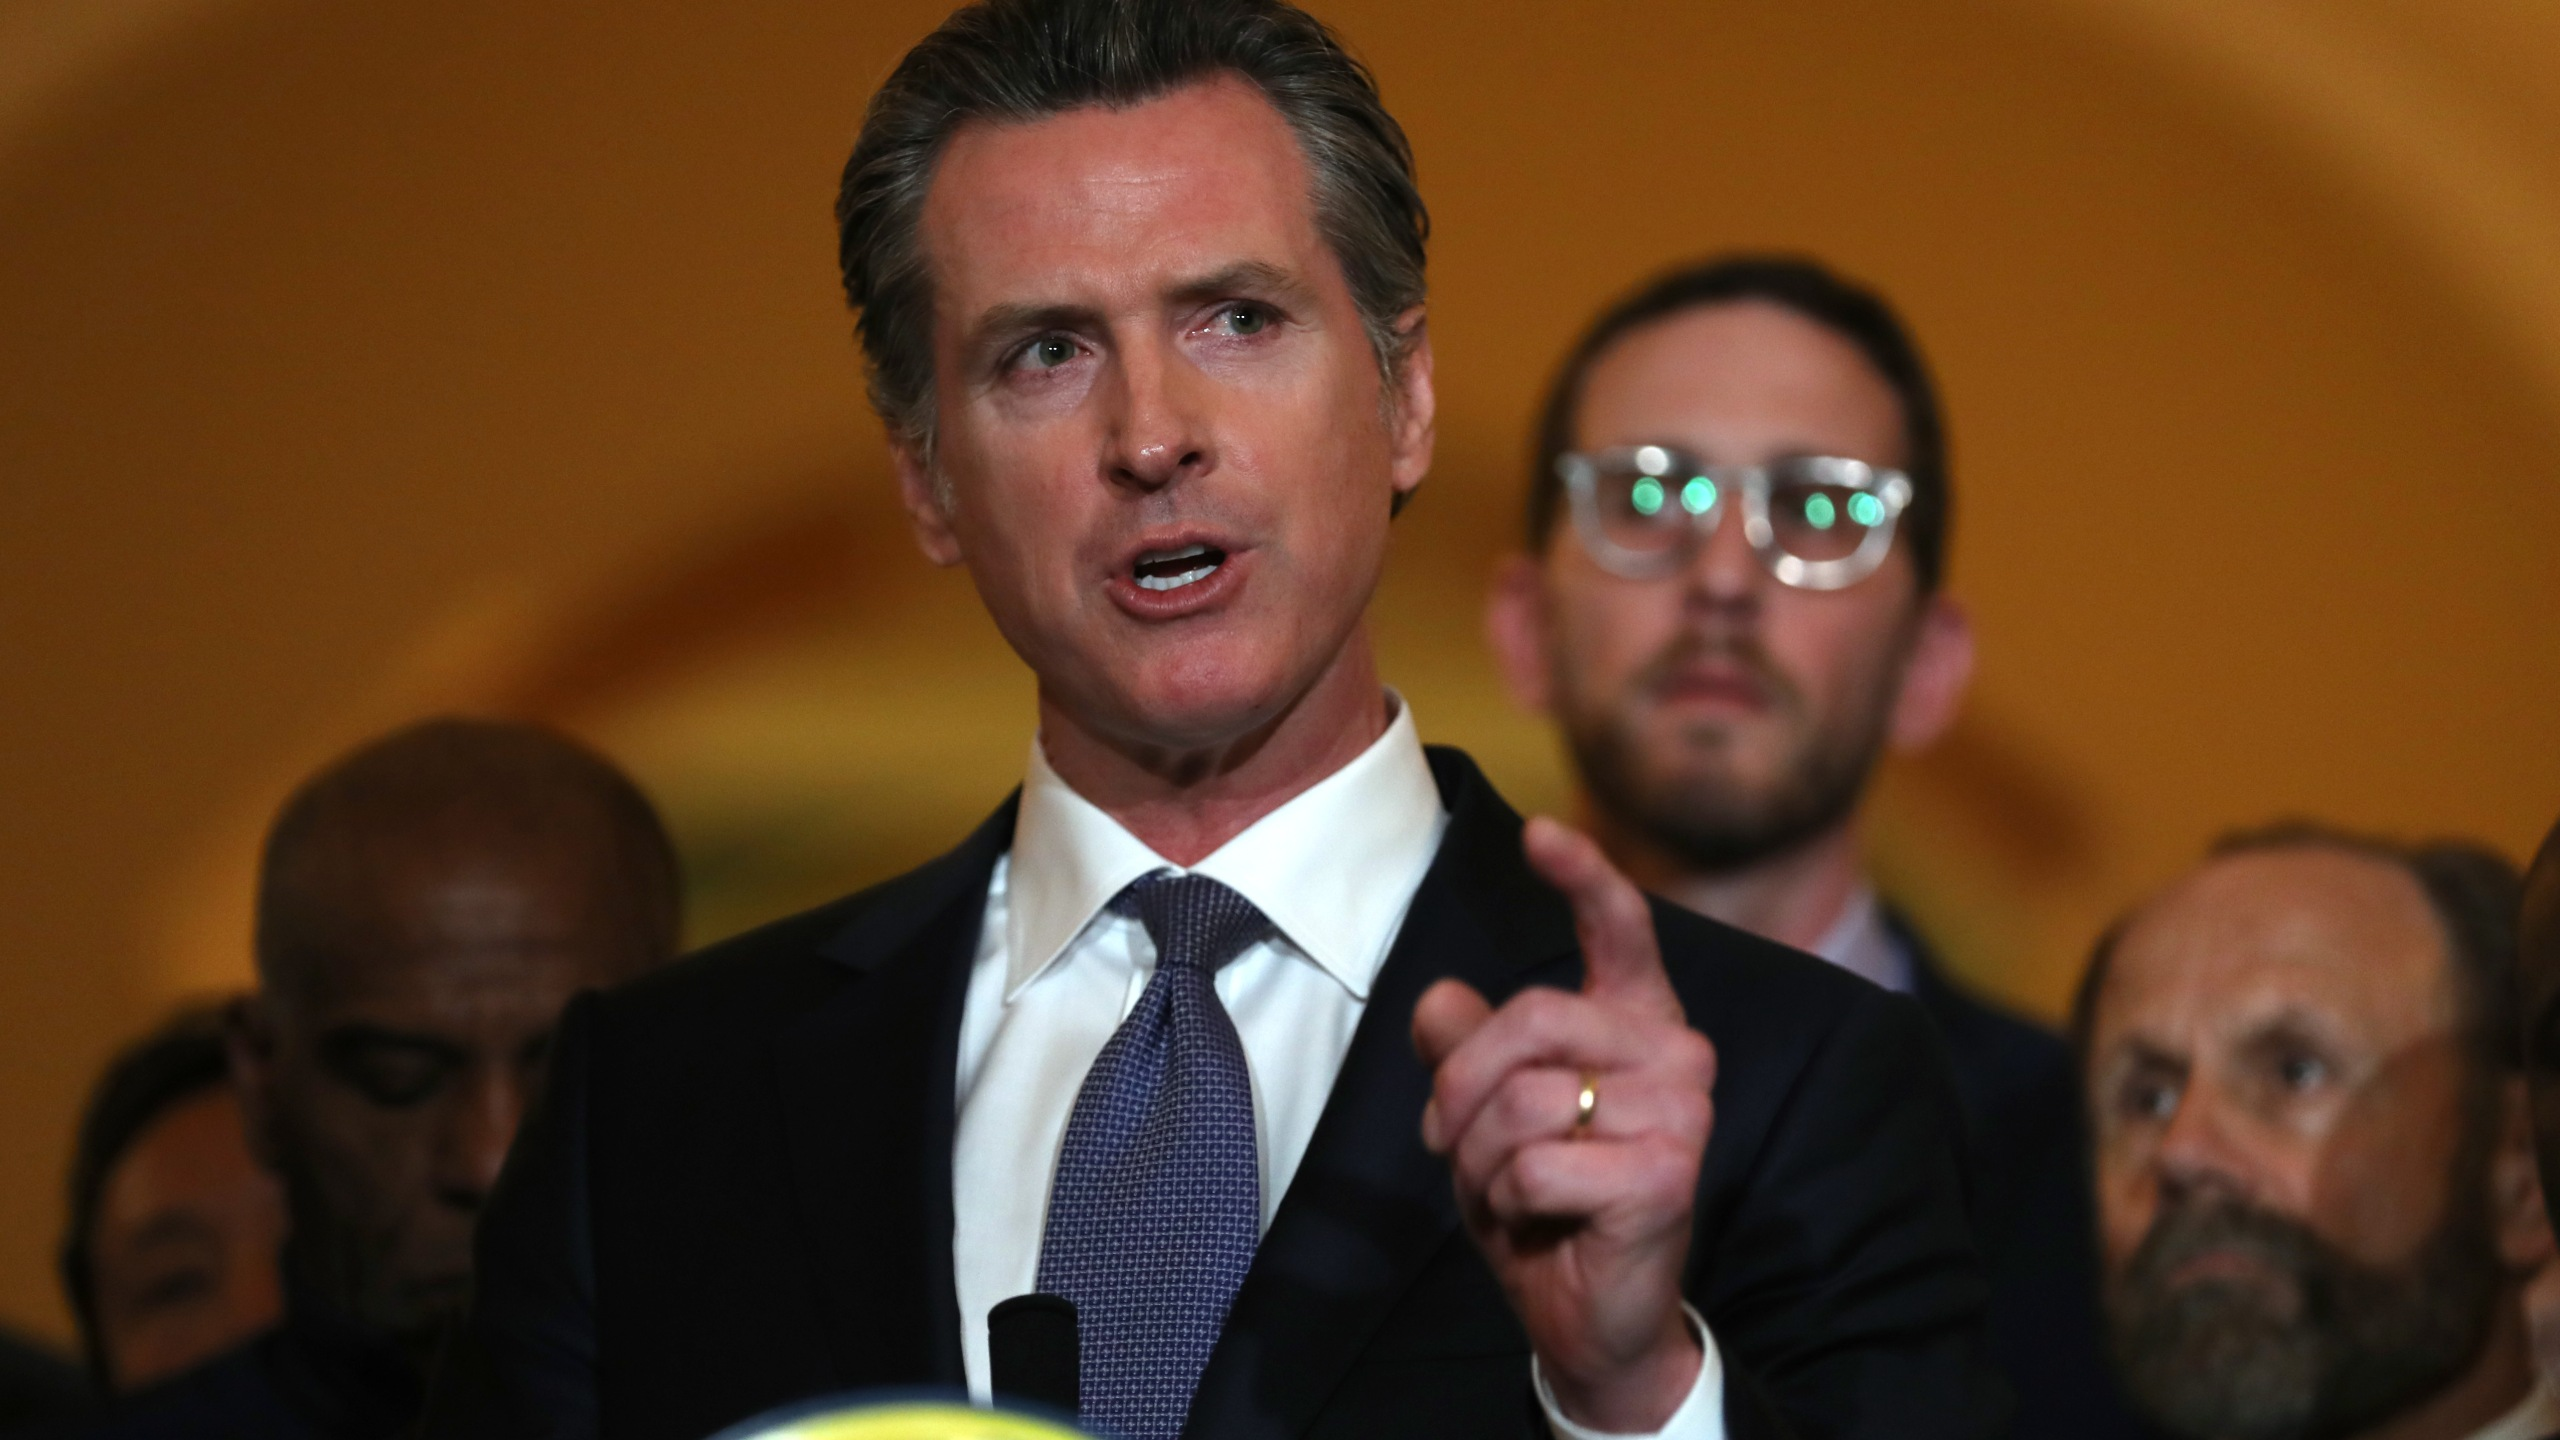 California Gov. Gavin Newsom speaks during a news conference at the Capitol in Sacramento on March 13, 2019. (Credit: Justin Sullivan / Getty Images)